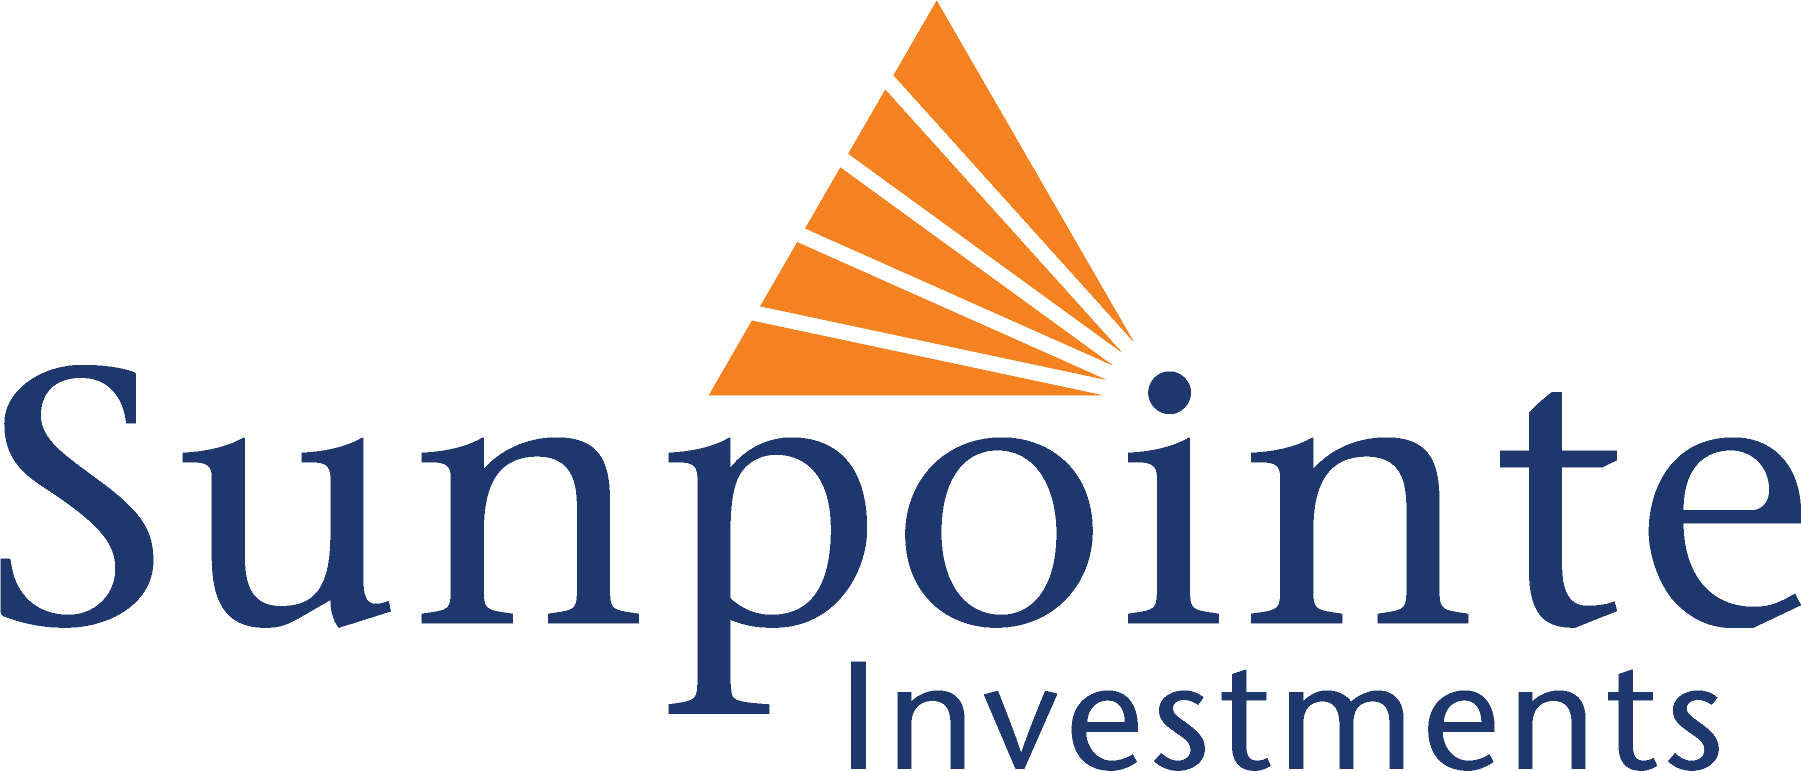 Sunpointe Investments St. Louis